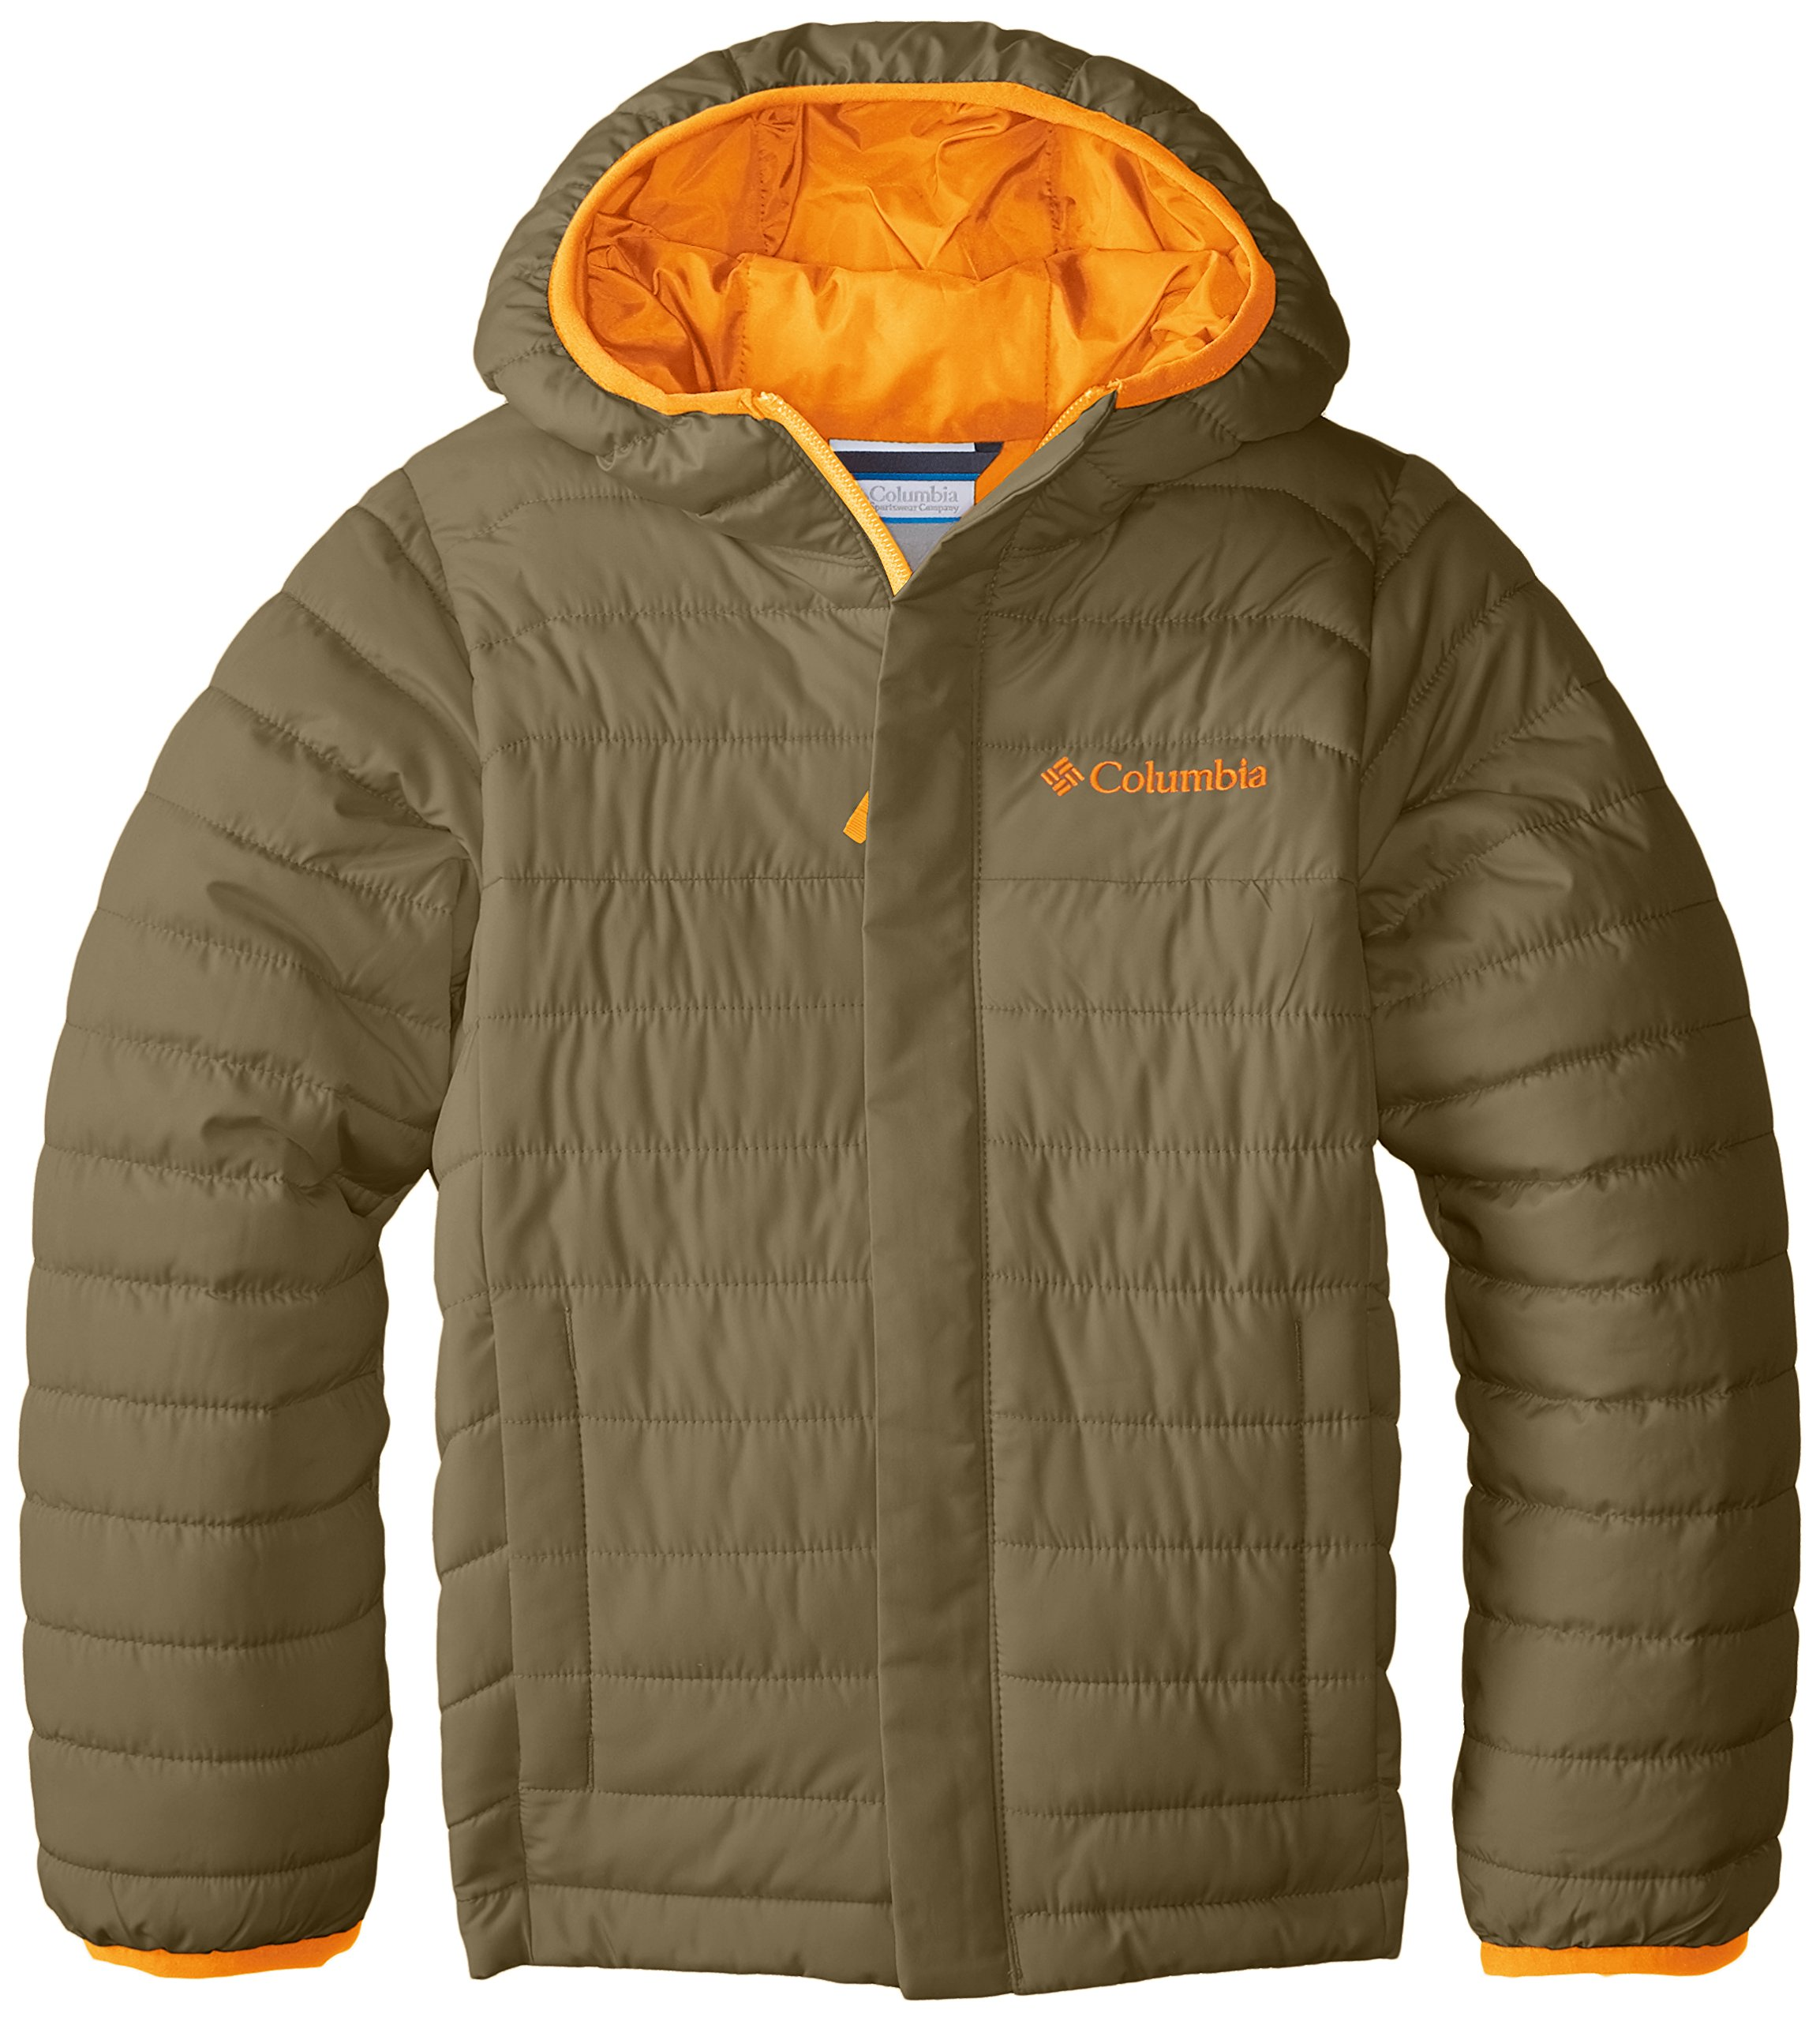 Columbia Big Boys' Powder Lite Puffer Jacket, Sage, Small by Columbia (Image #1)